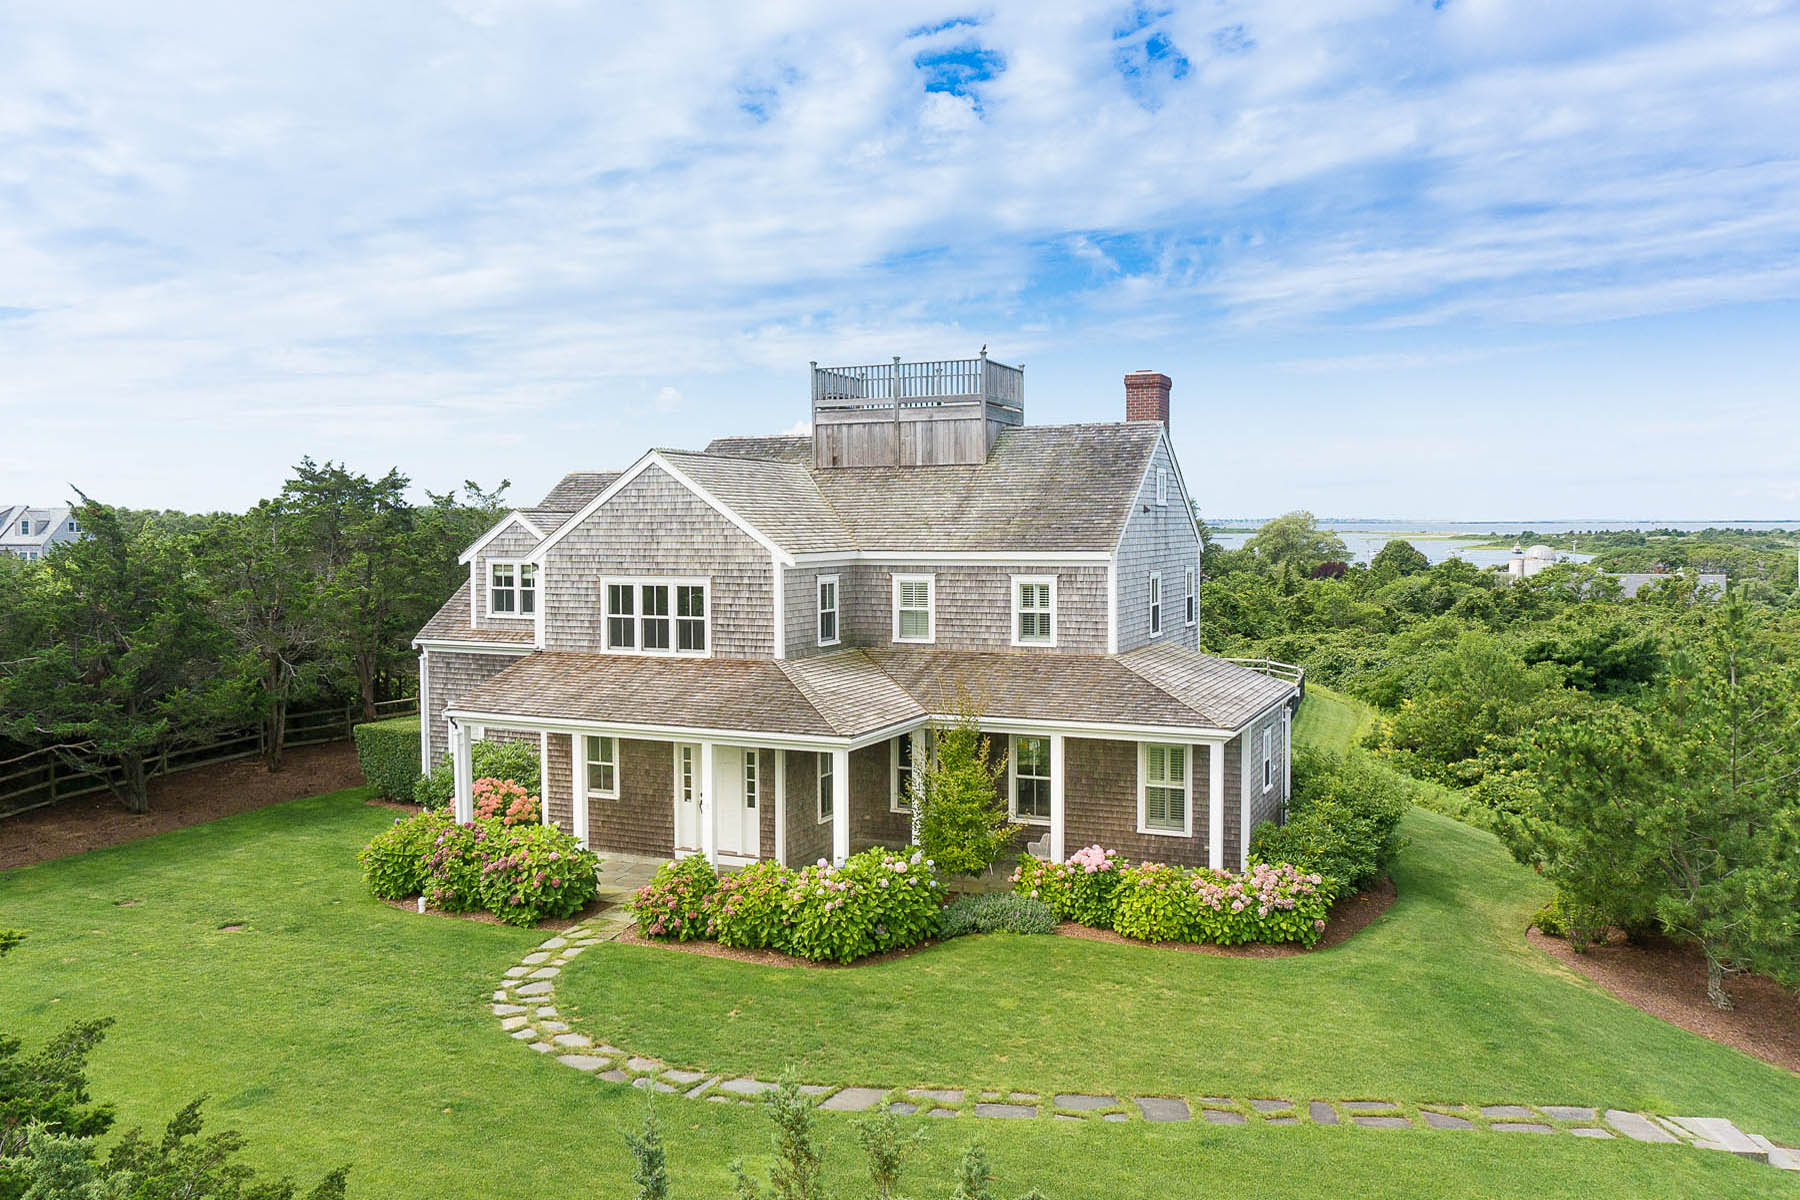 Maison unifamiliale pour l Vente à Expansive Water Views - 6 Bedrooms and 6 Baths 5 Eat Fire Spring Road Nantucket, Massachusetts, 02554 États-Unis